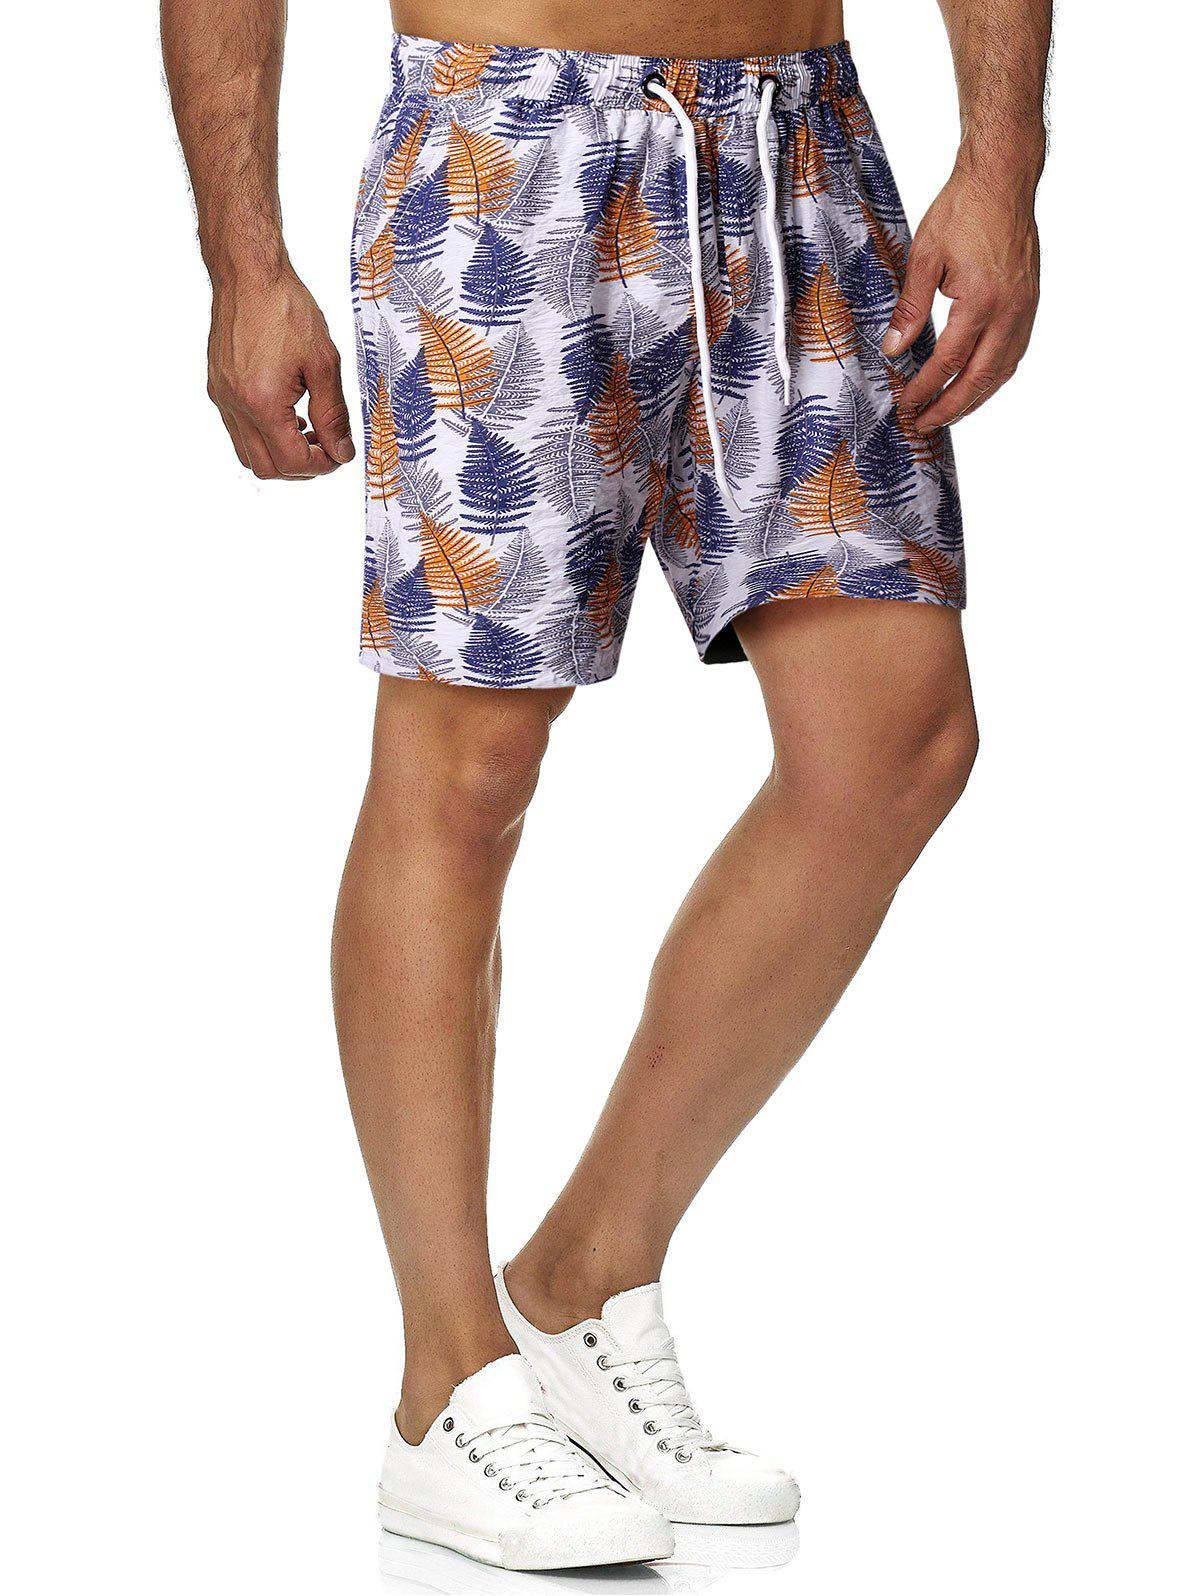 Unique Leaves Print Drawstring Beach Shorts